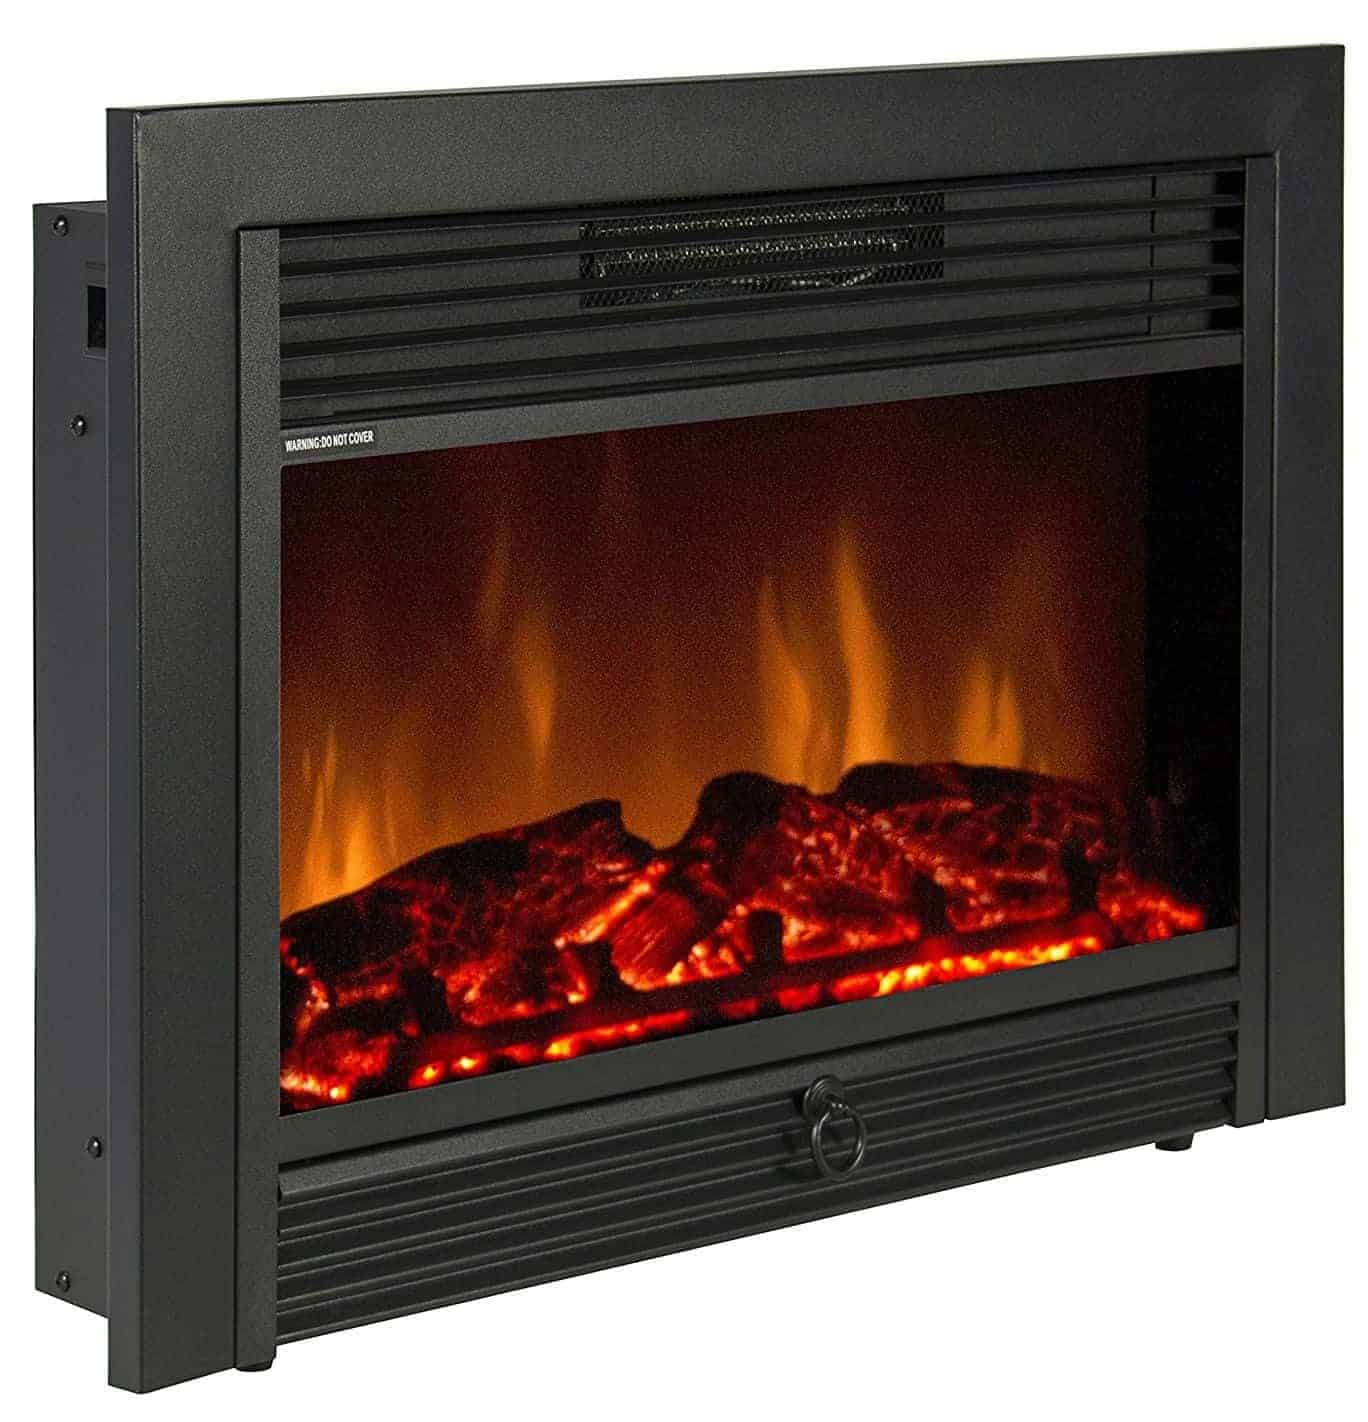 SKY1826 Embedded Fireplace Electric Insert